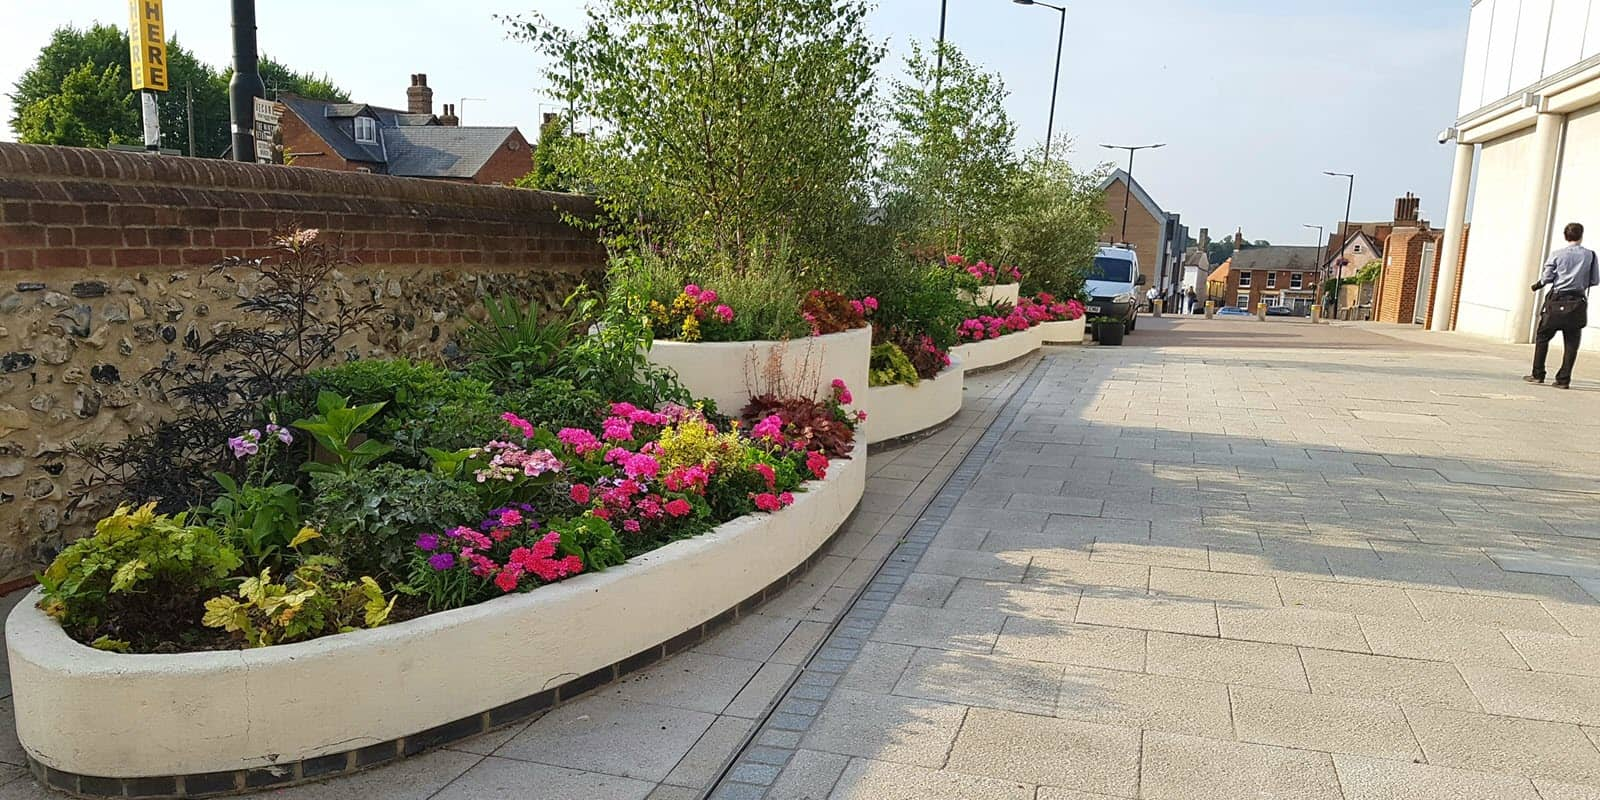 Commercial Garden Maintenance by CCG Gardeners, The Arc, Bury In Bloom Bury St Edmunds